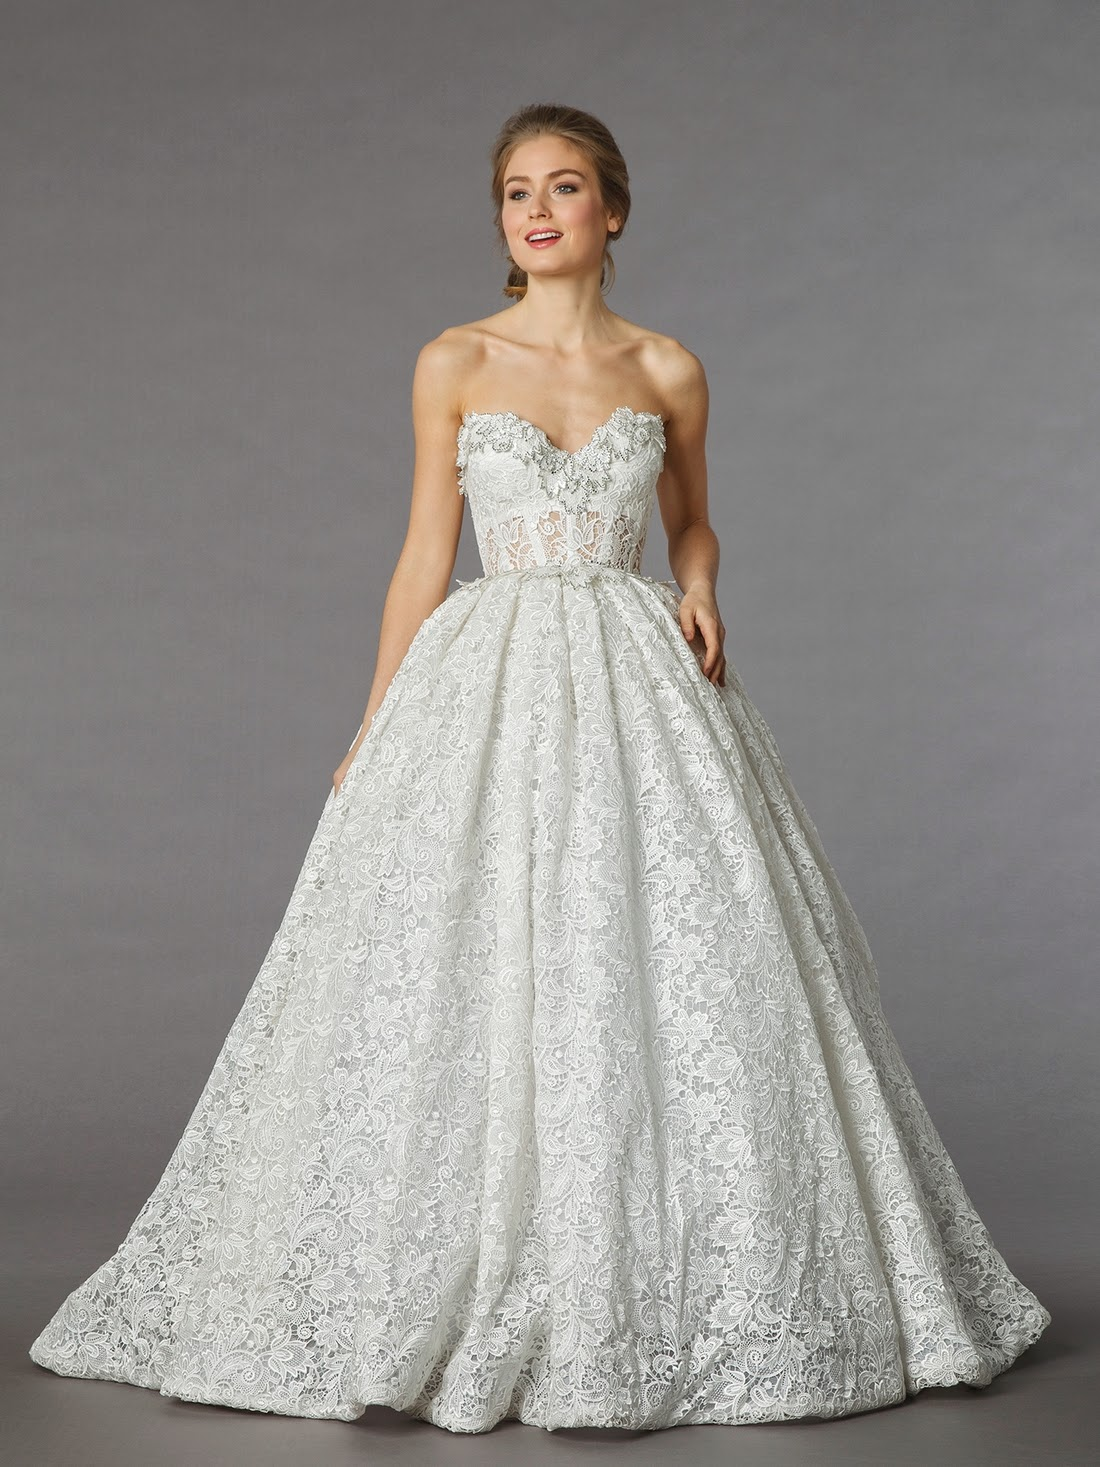 Whimsybride whimsybride faves pnina tornai for Lace wedding dresses with sleeves kleinfelds